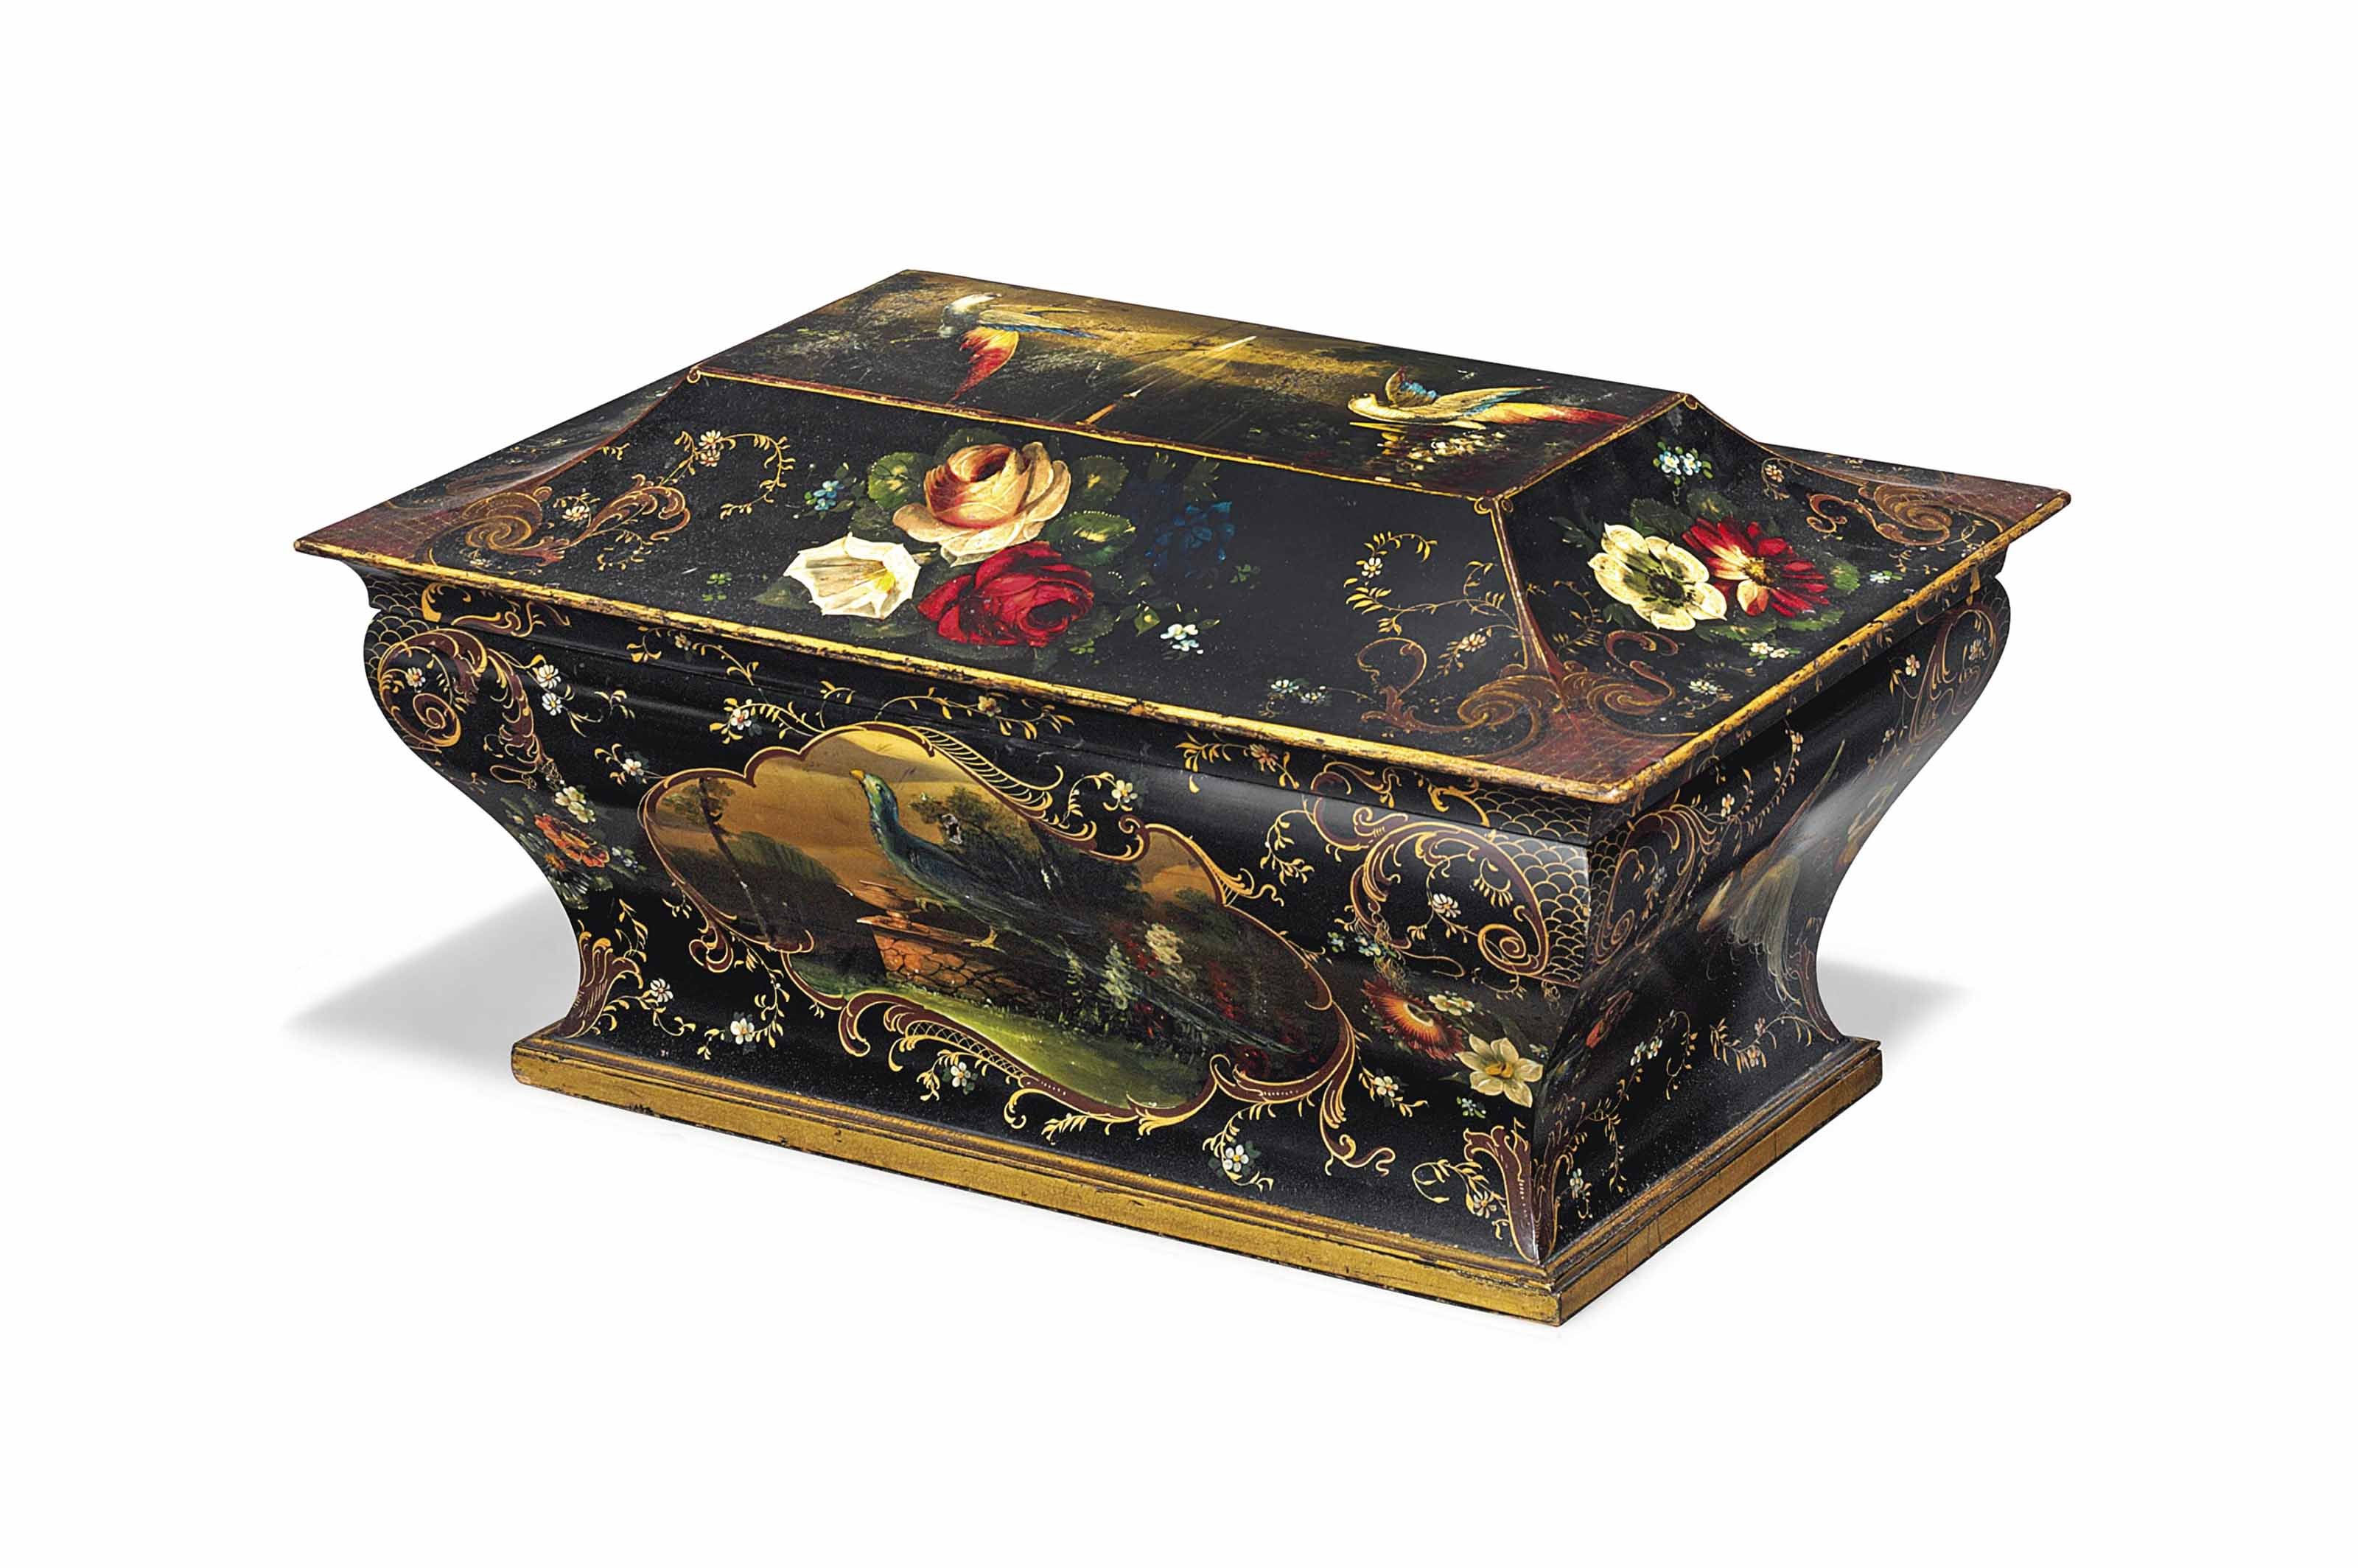 A LARGE FRENCH BLACK AND GILT-JAPANNED AND POLYCHROME-DECORATED PAPIER MACHE WORKBOX